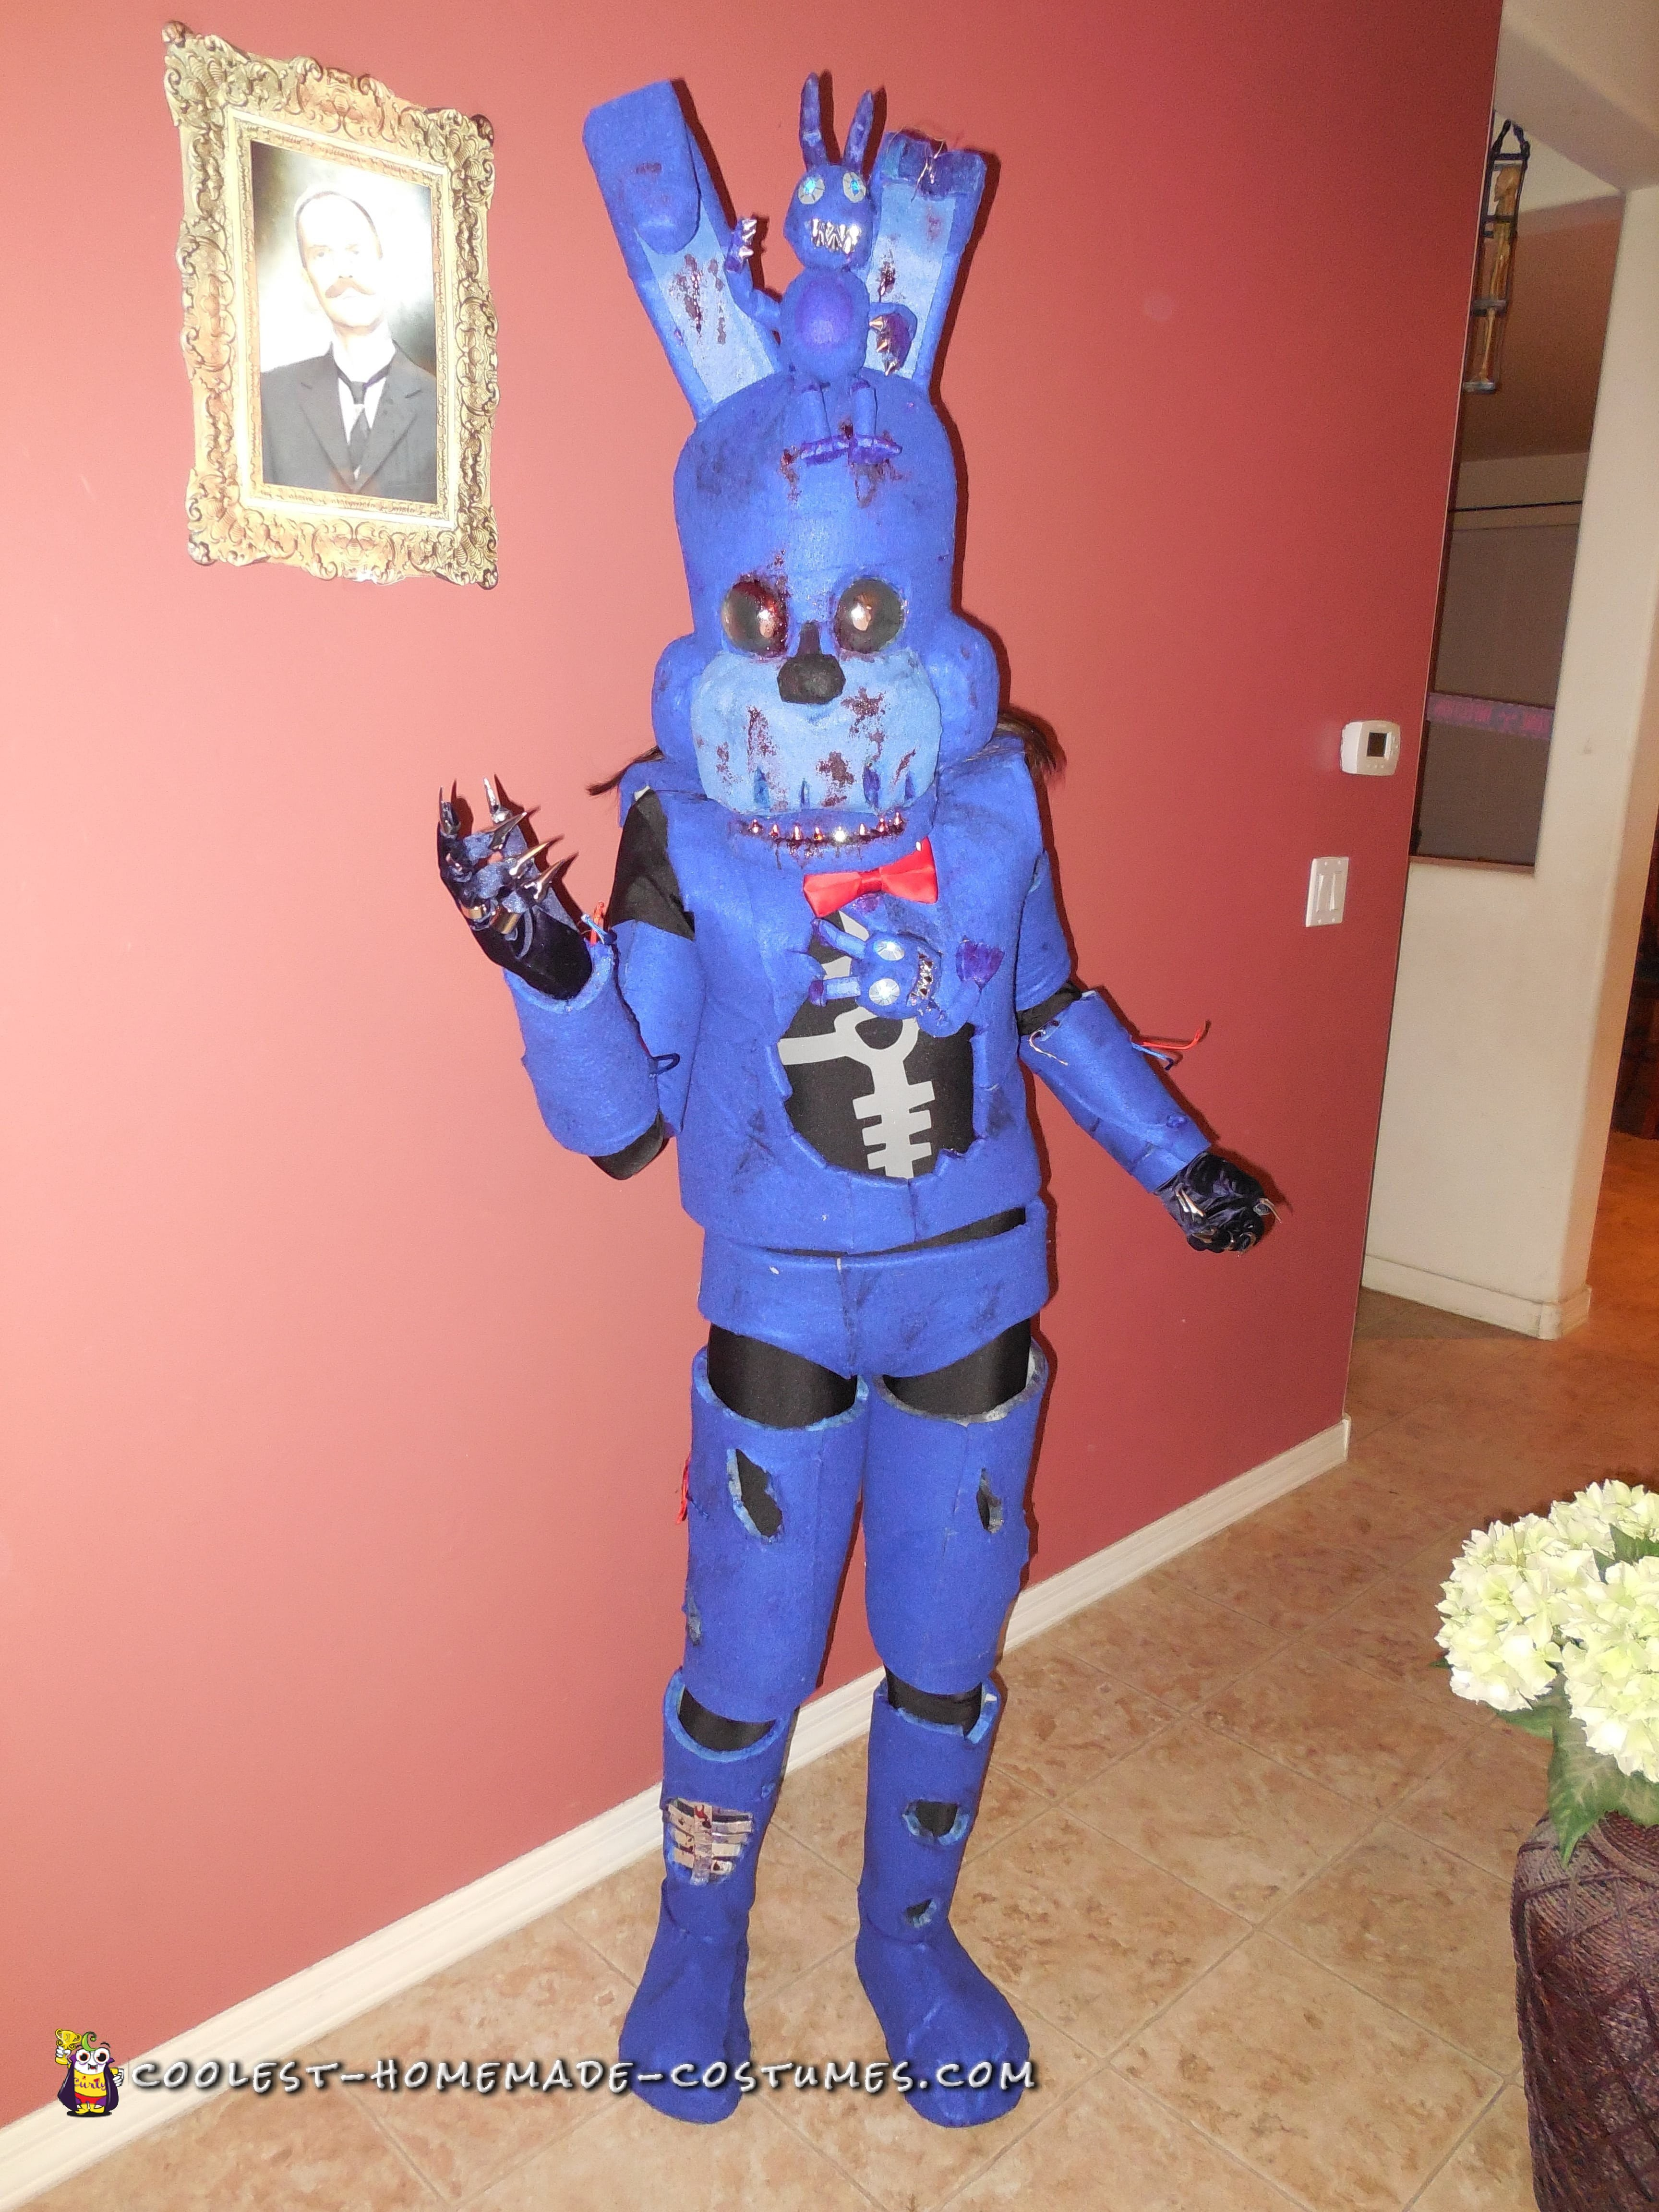 13 Year Old Creates Bonnie Costume On Her Own